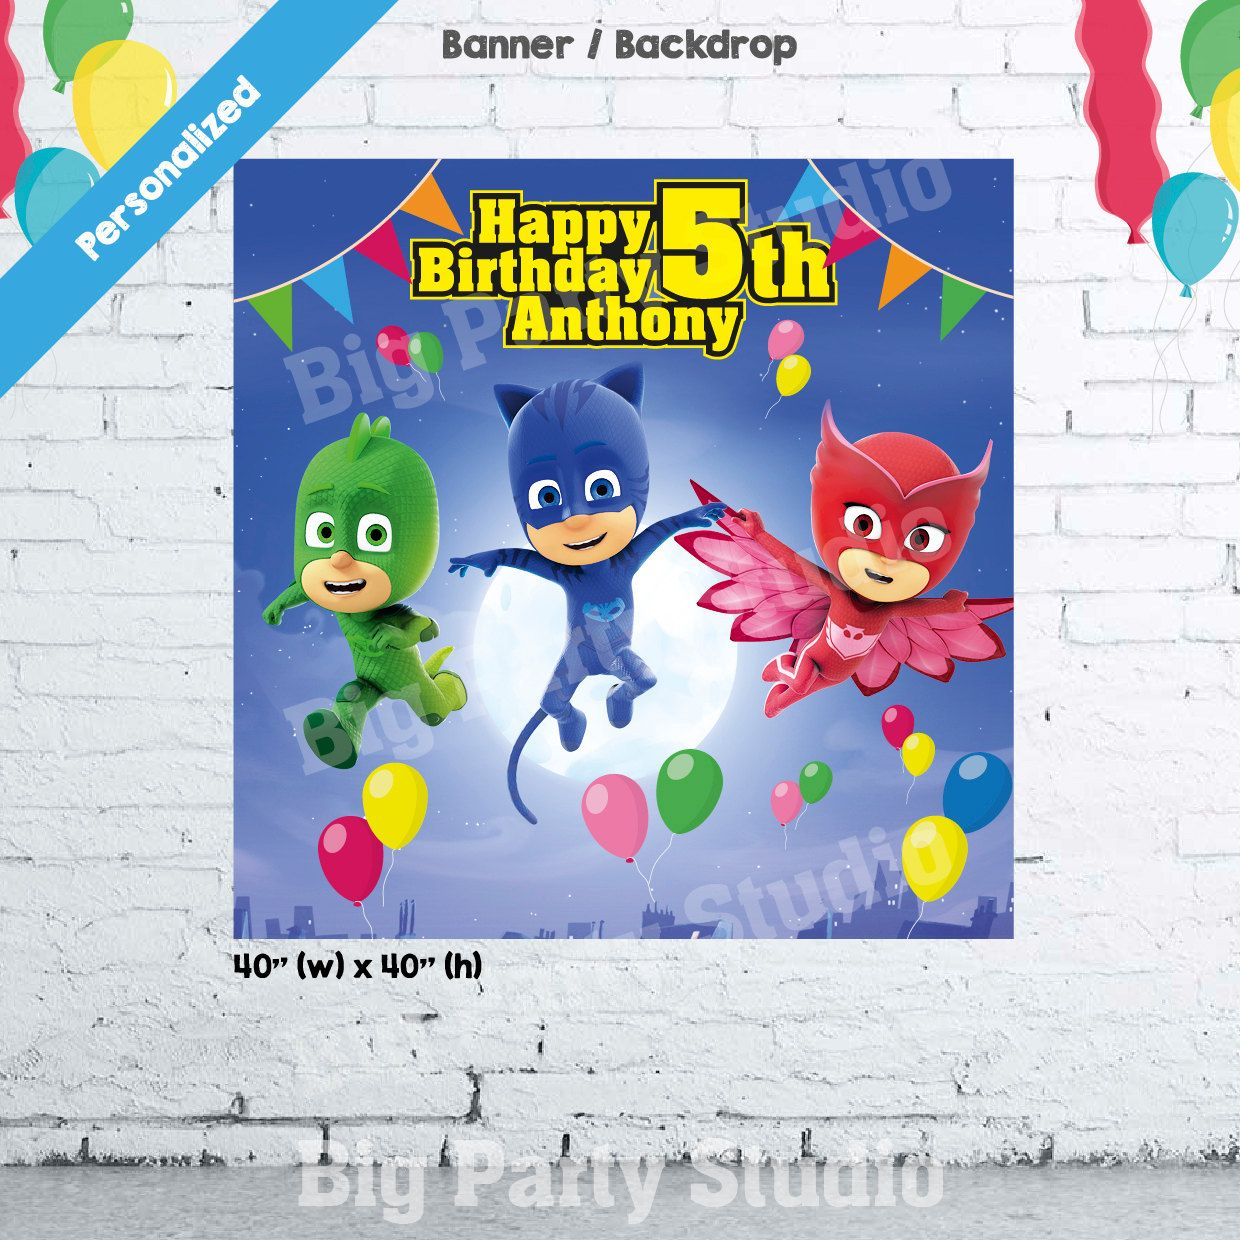 pin on party backdrops and banner